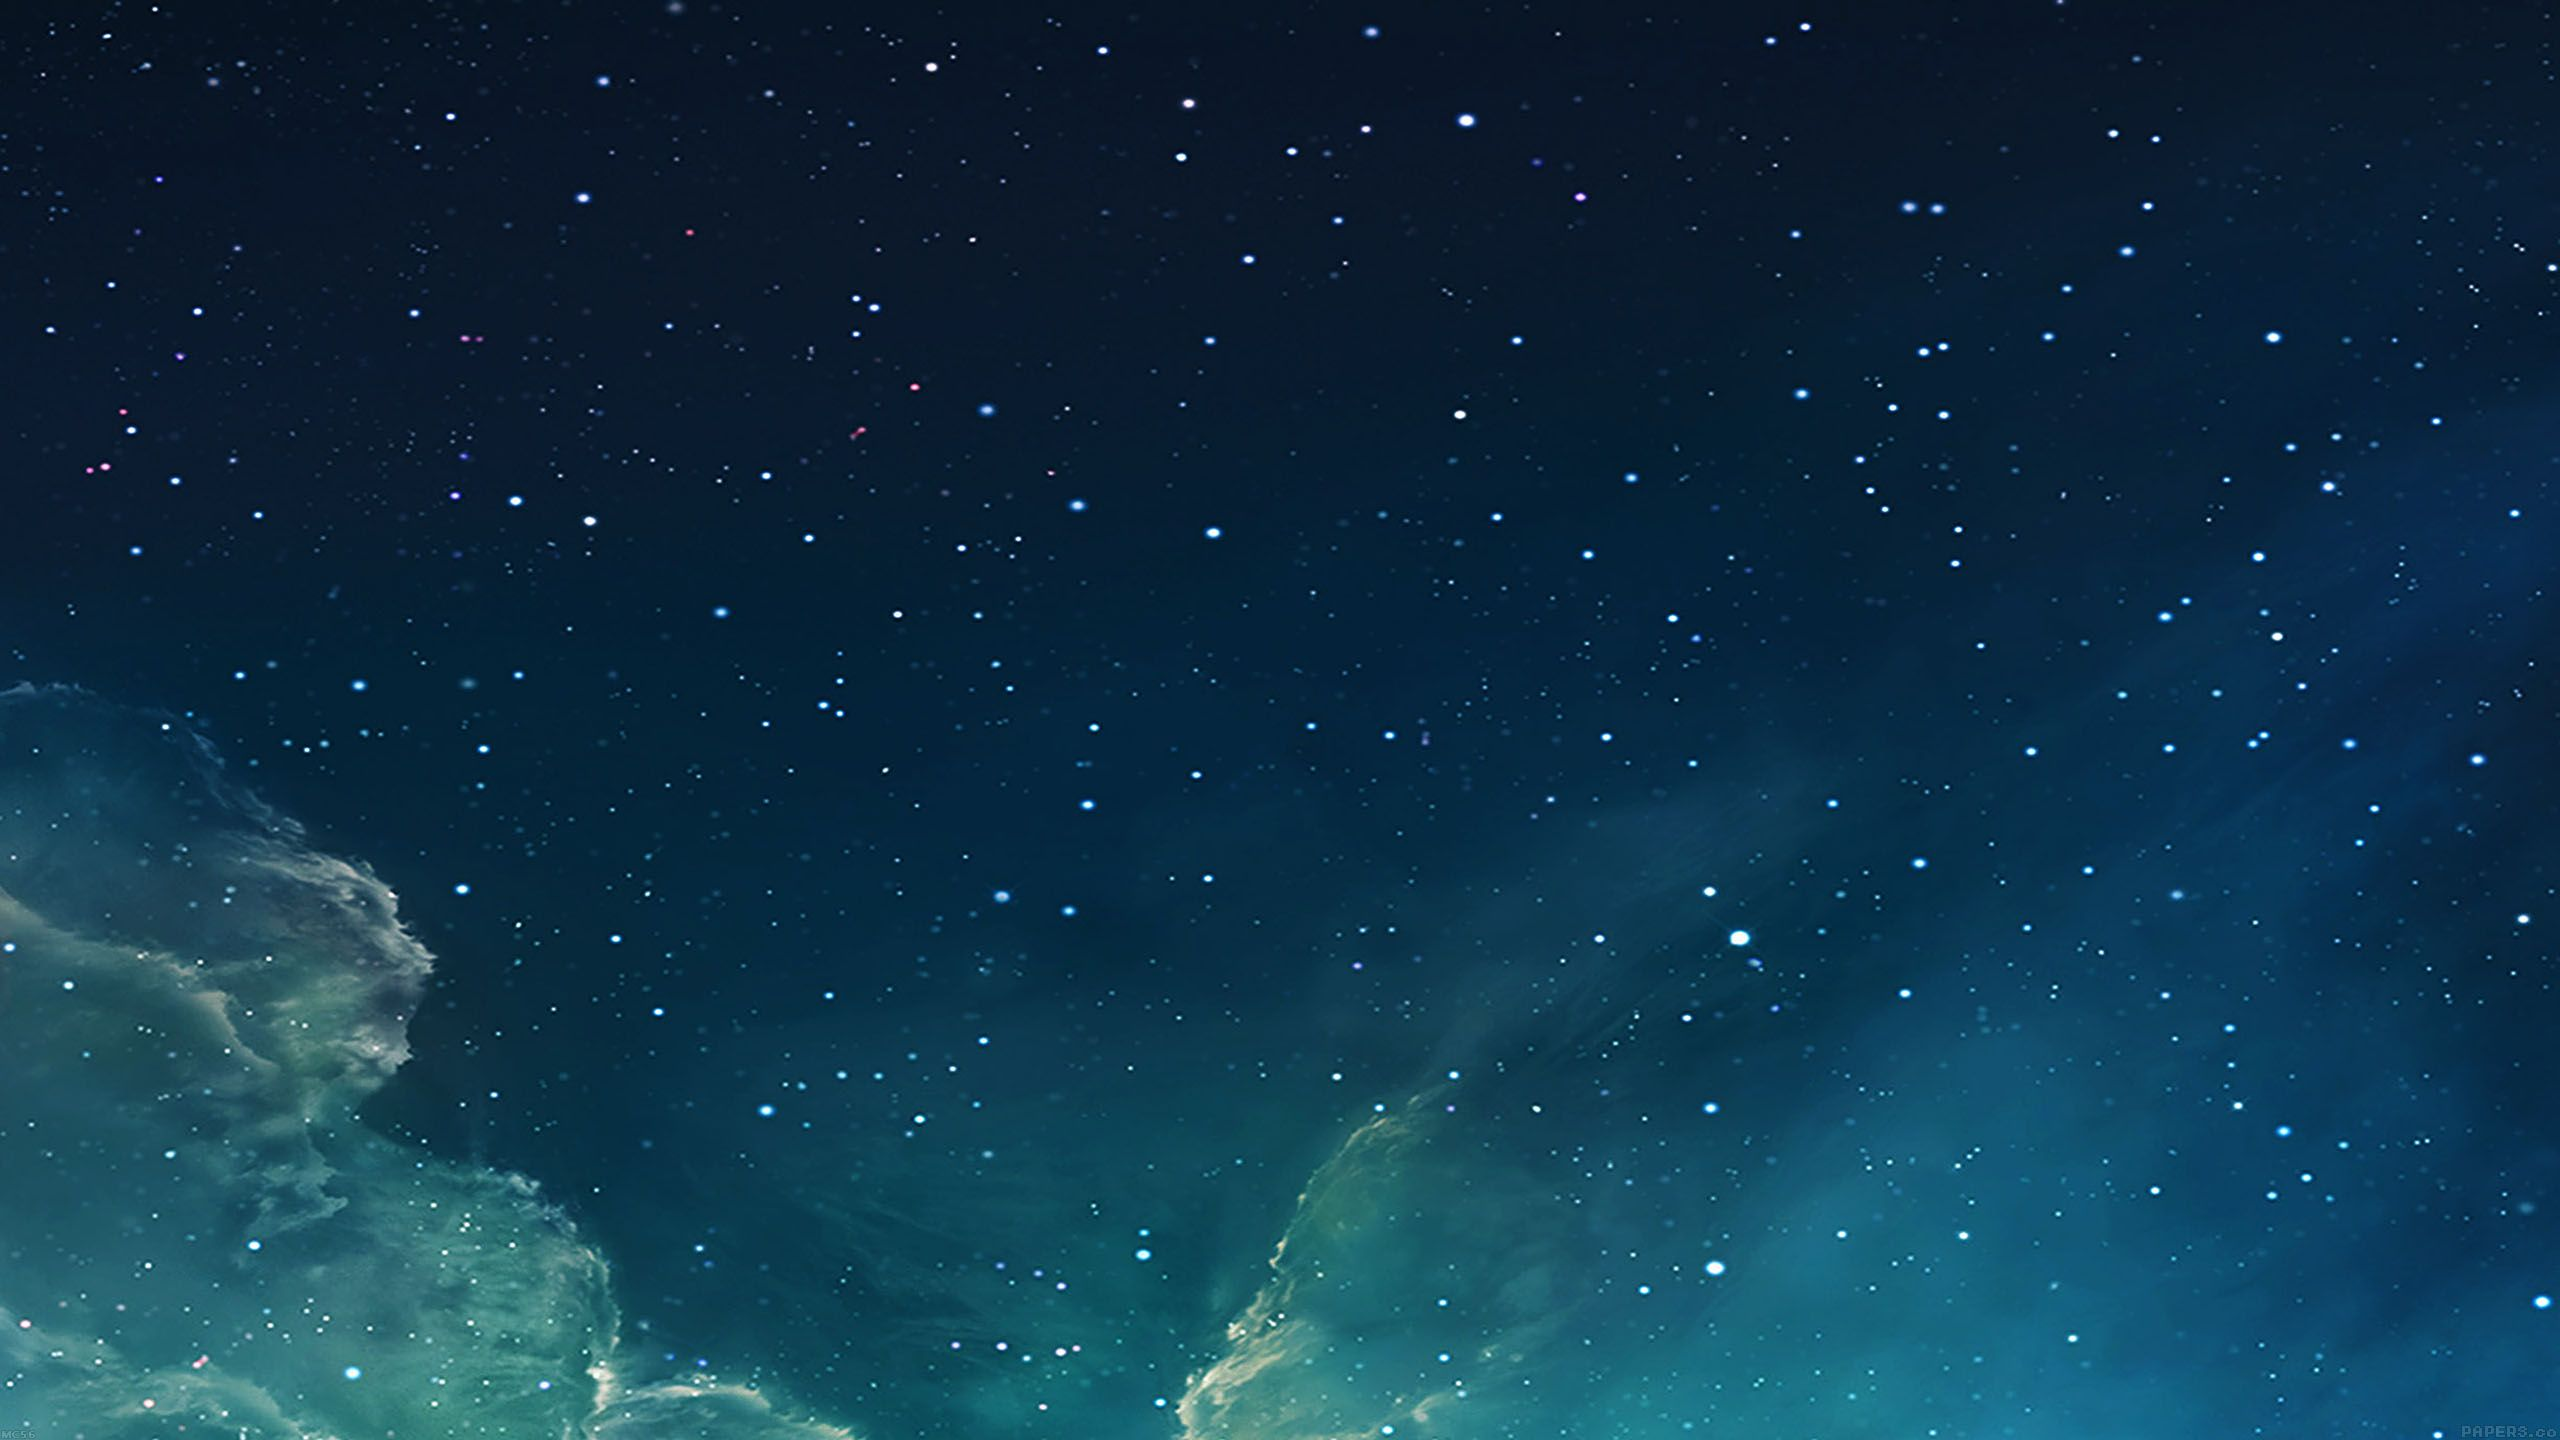 Mac desktop backgrounds galaxy